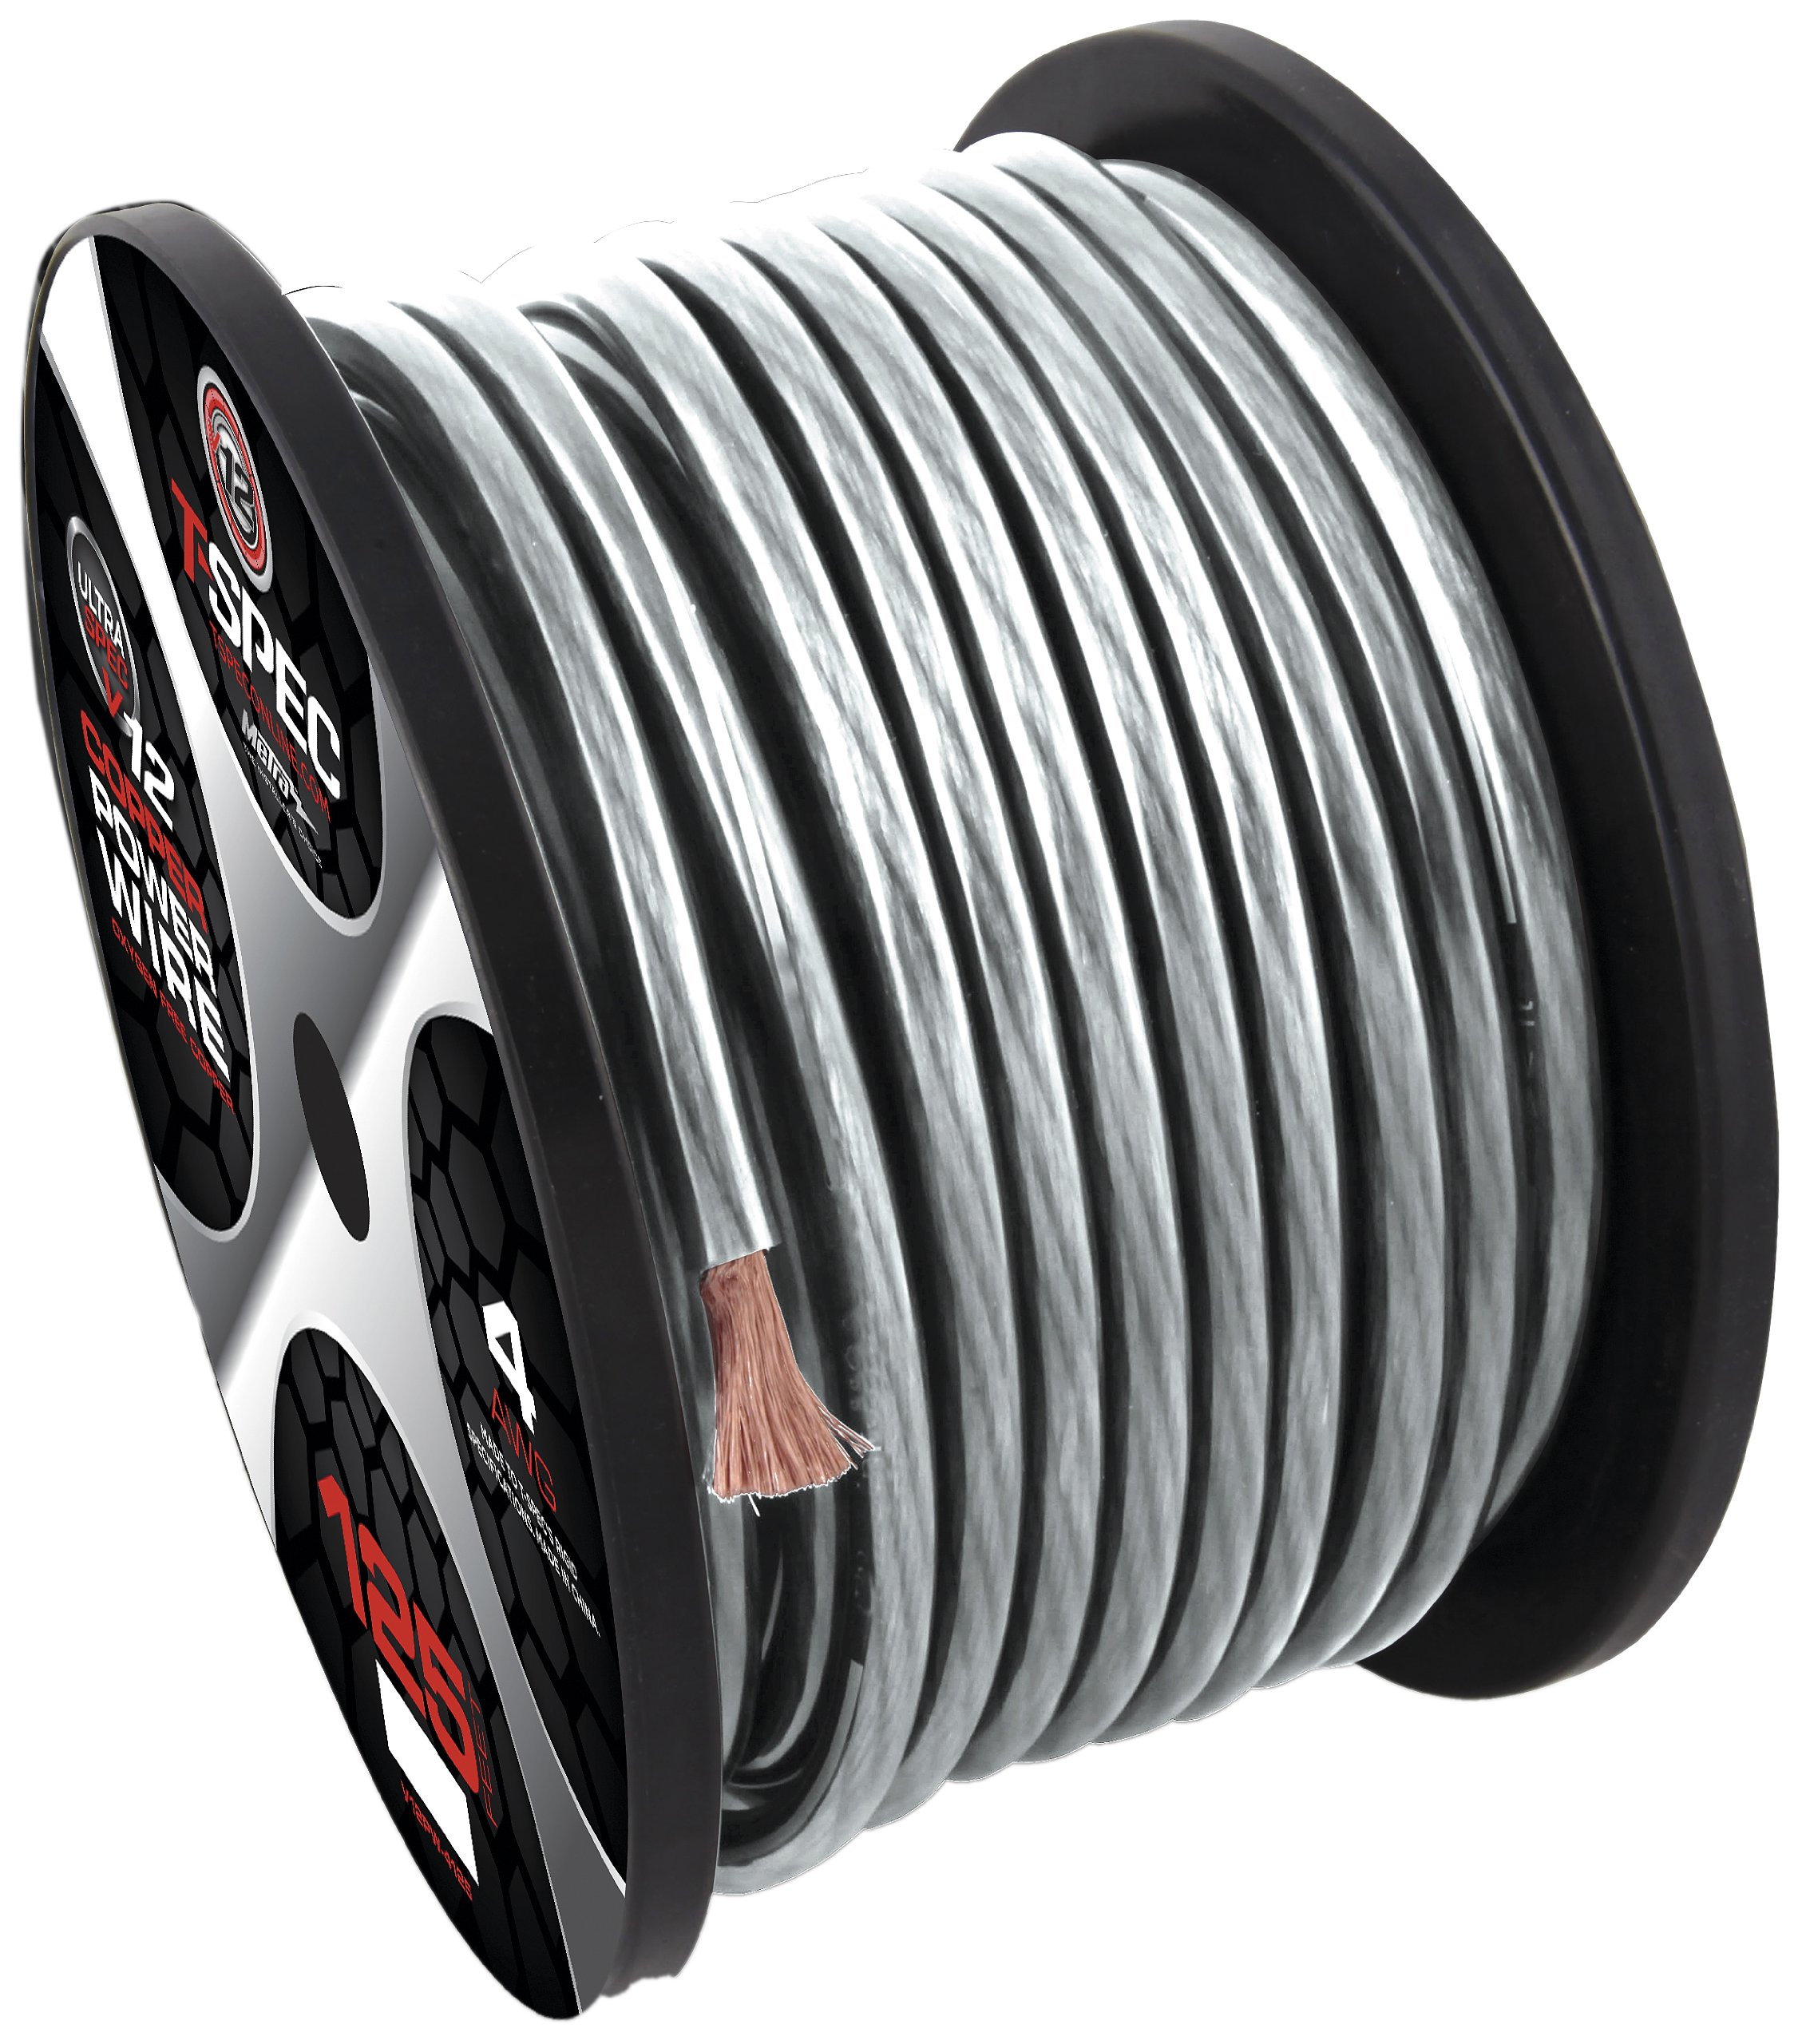 T-Spec V12PW-4125 V12 Series Power Wire Spools 4 AWG, 125-Feet by T-Spec (Image #1)